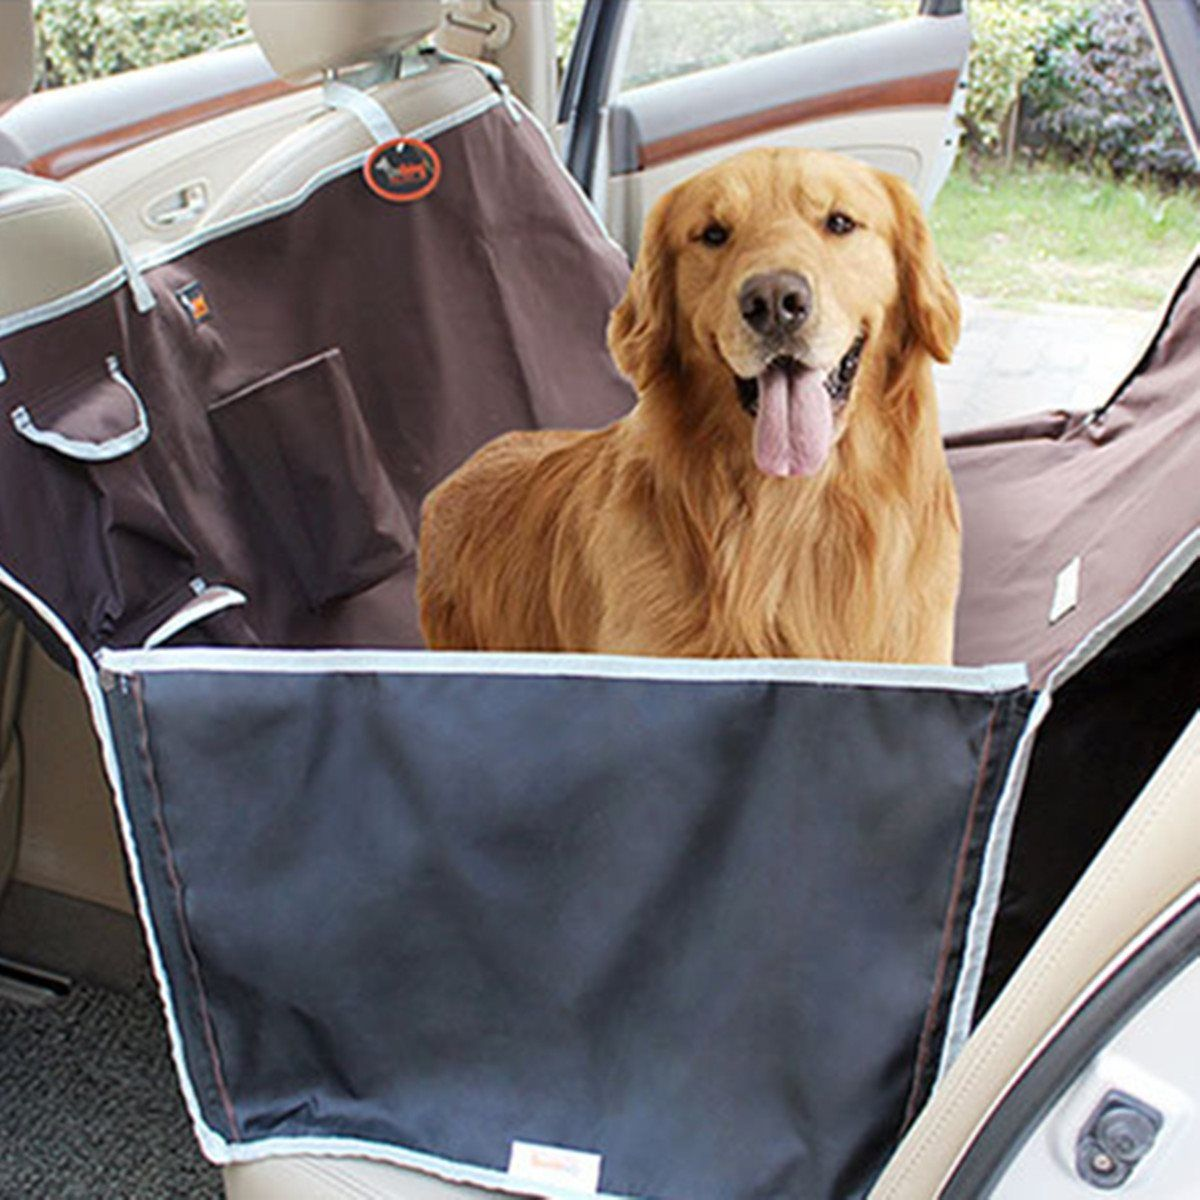 single black seat cover front dog all trucks outad mats itm foldable nonslip suvs pet hammock cars waterproof car for